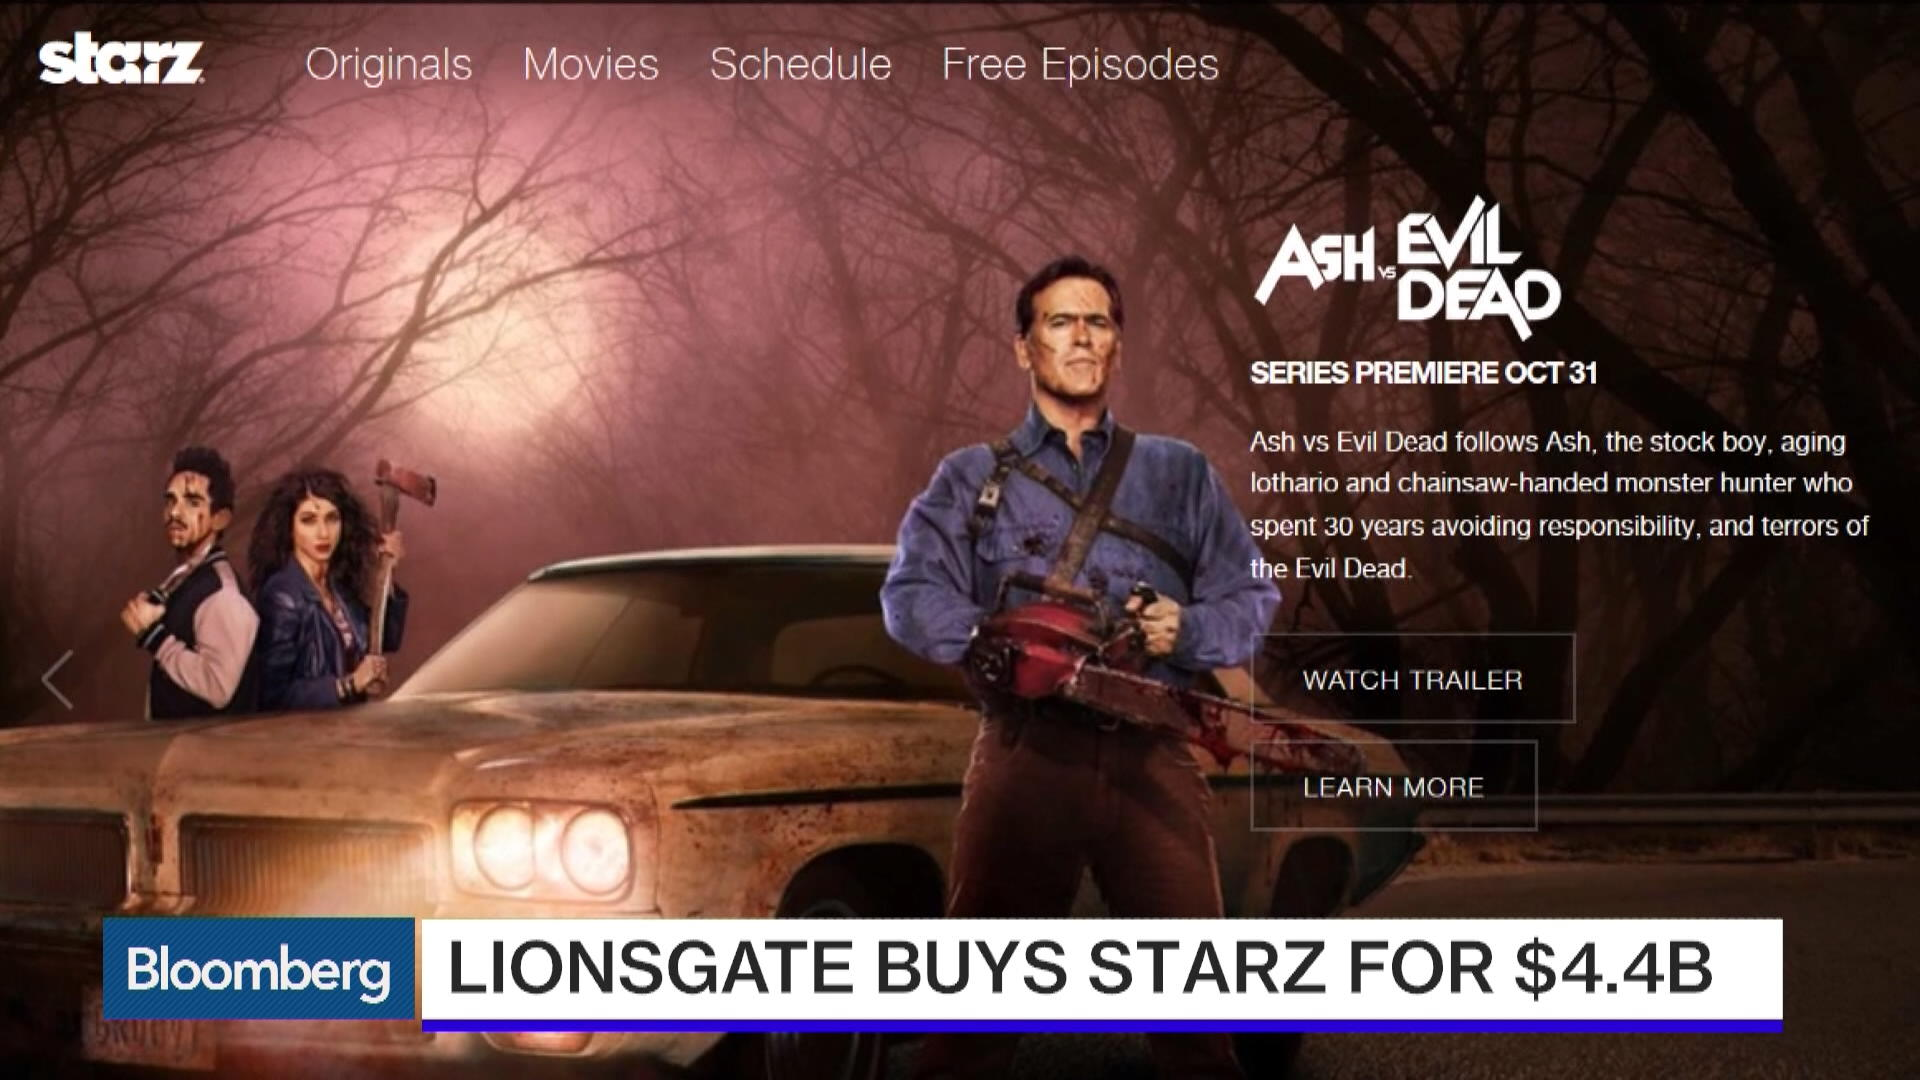 Lions Gate Buys Starz For 44 Billion In Premium Cable Push Bloomberg The Authorized Amy Iphone Wallpaper Calculator Circuit Board